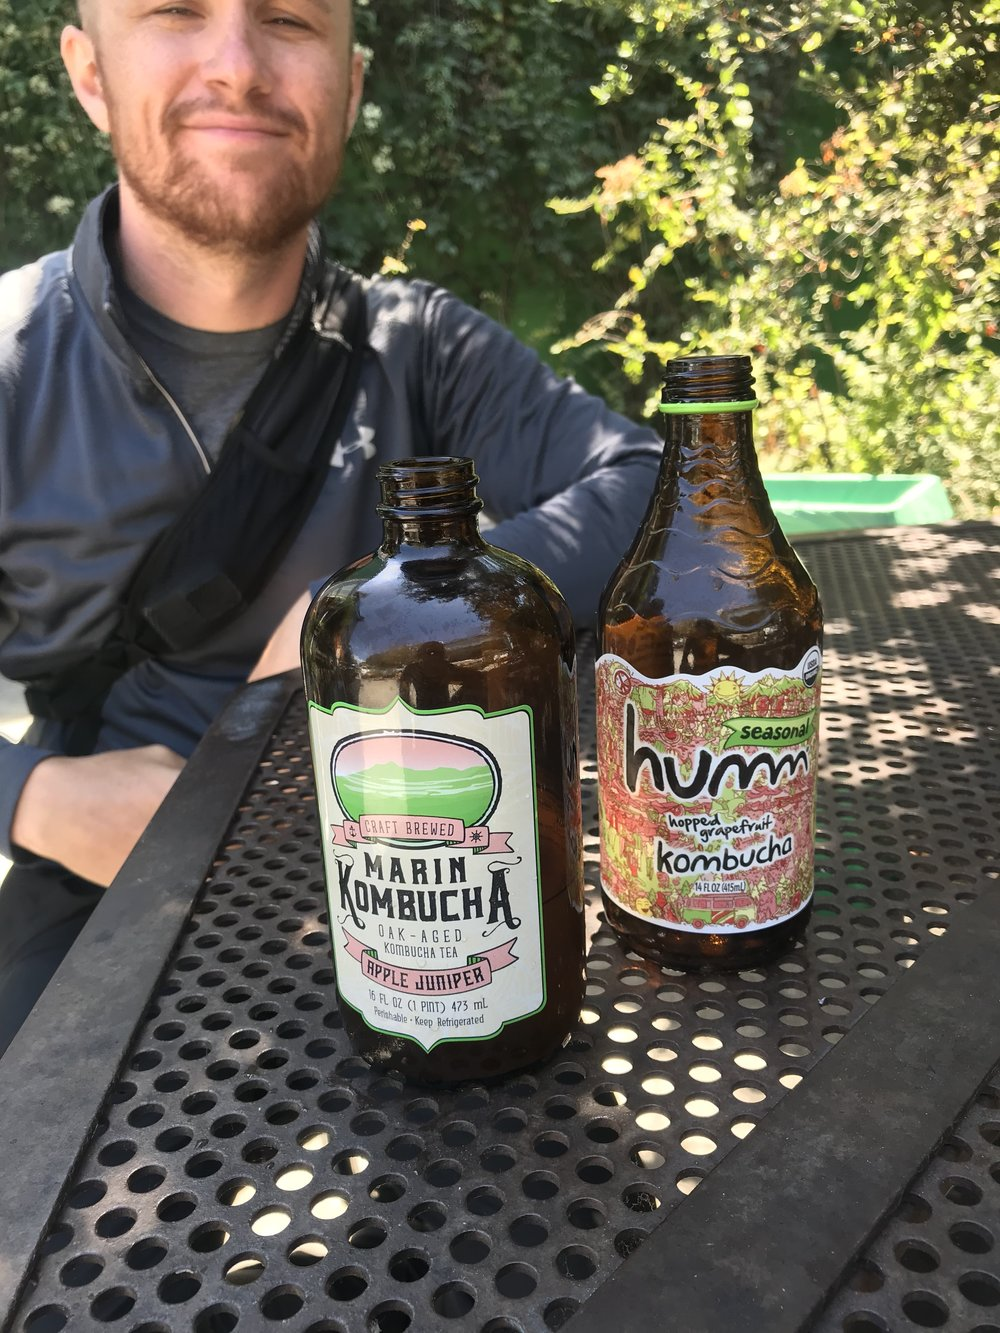 Lucky for us they had many flavors of kombucha.